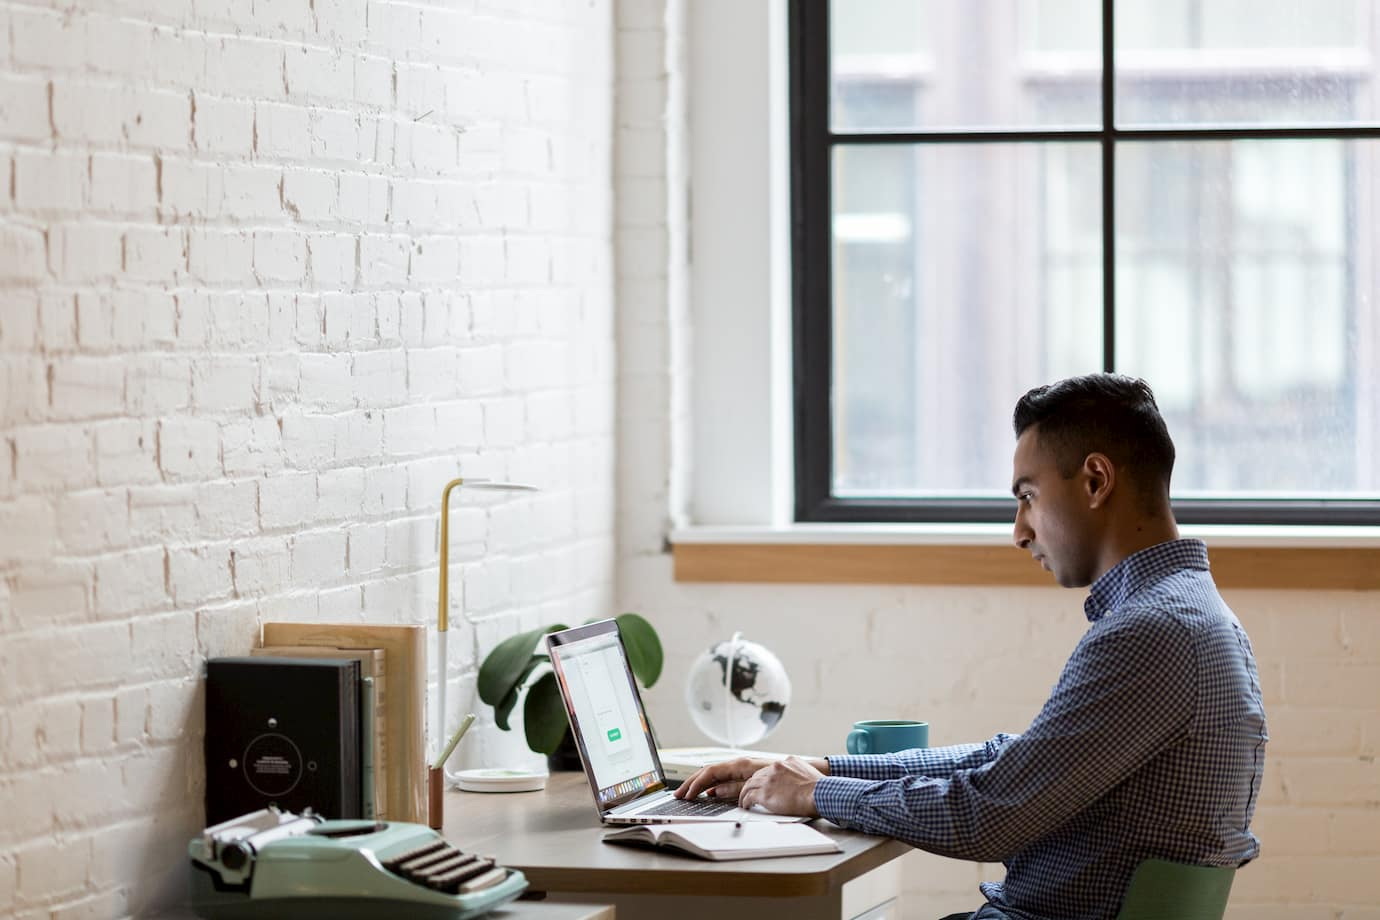 picture of a person using a computer